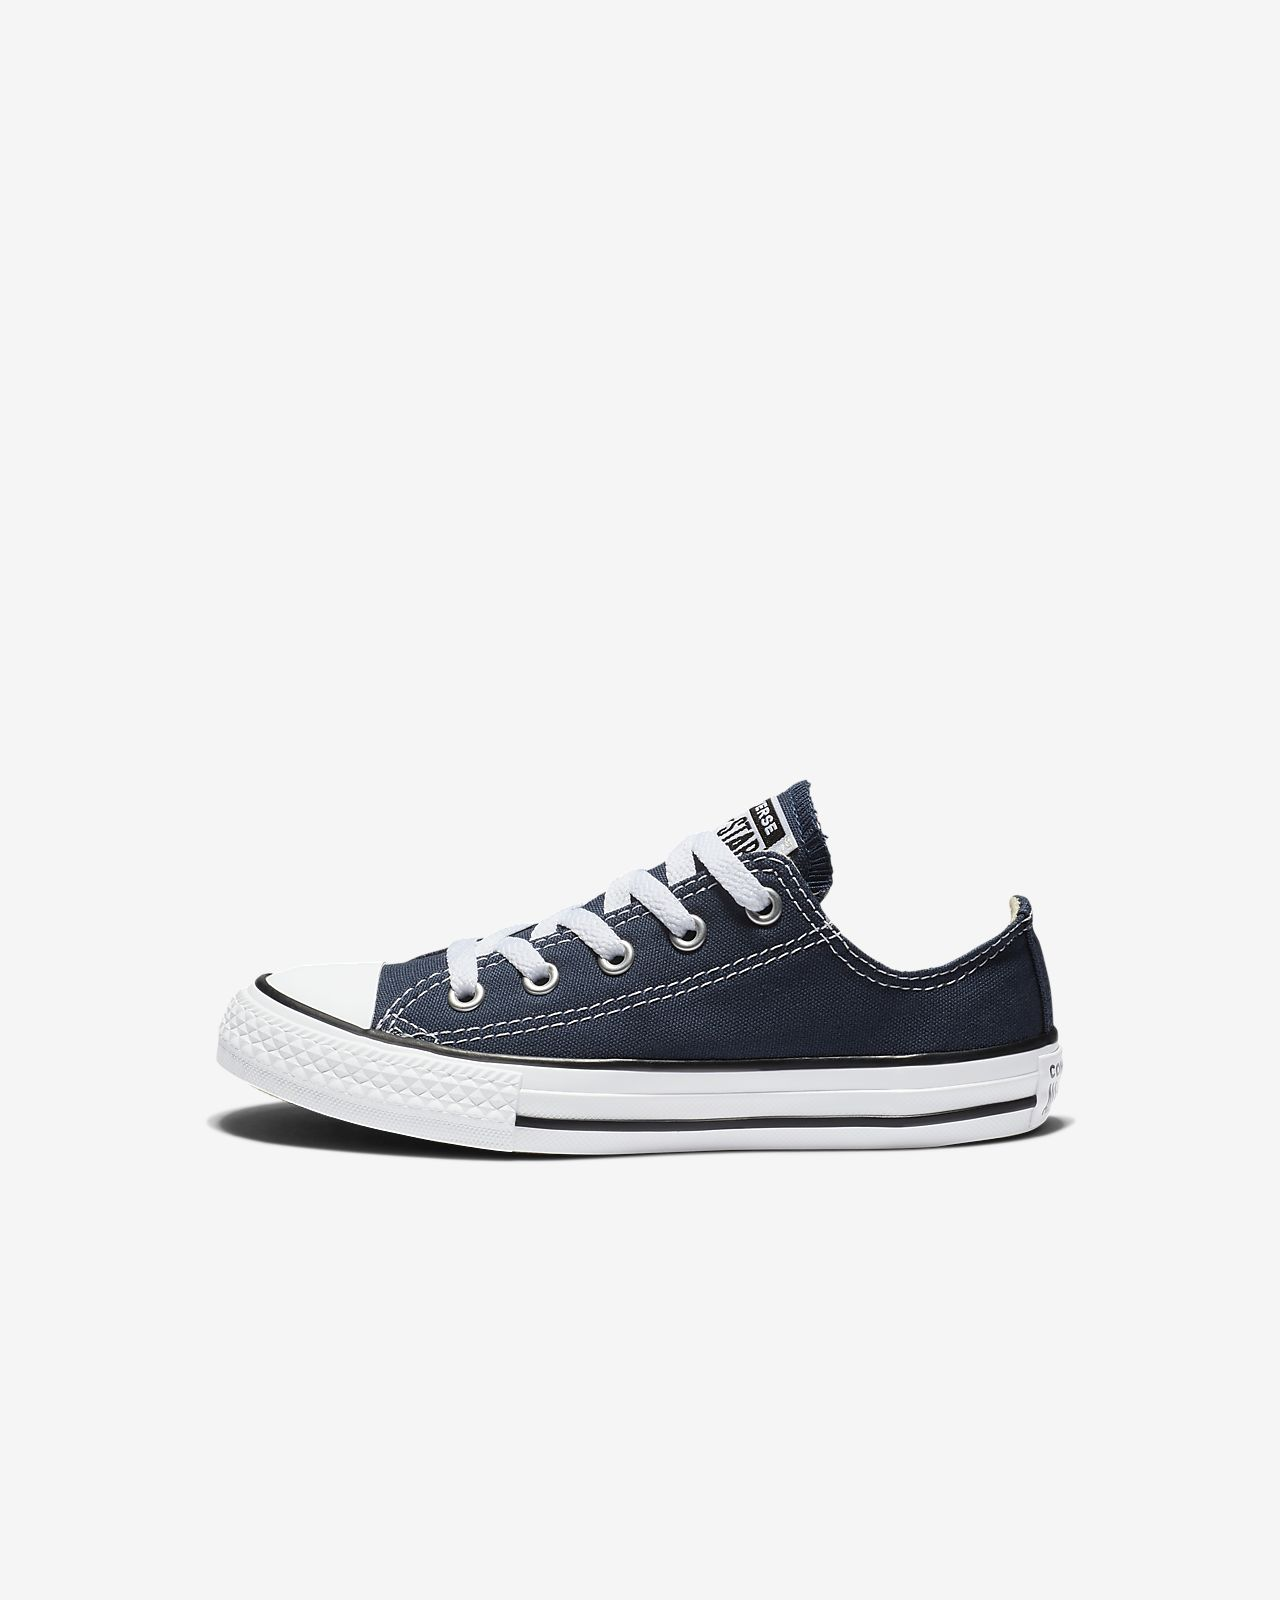 bbf6afd13e5 Converse Chuck Taylor All Star Low Top (10.5c-3y) Little Kids  Shoe ...